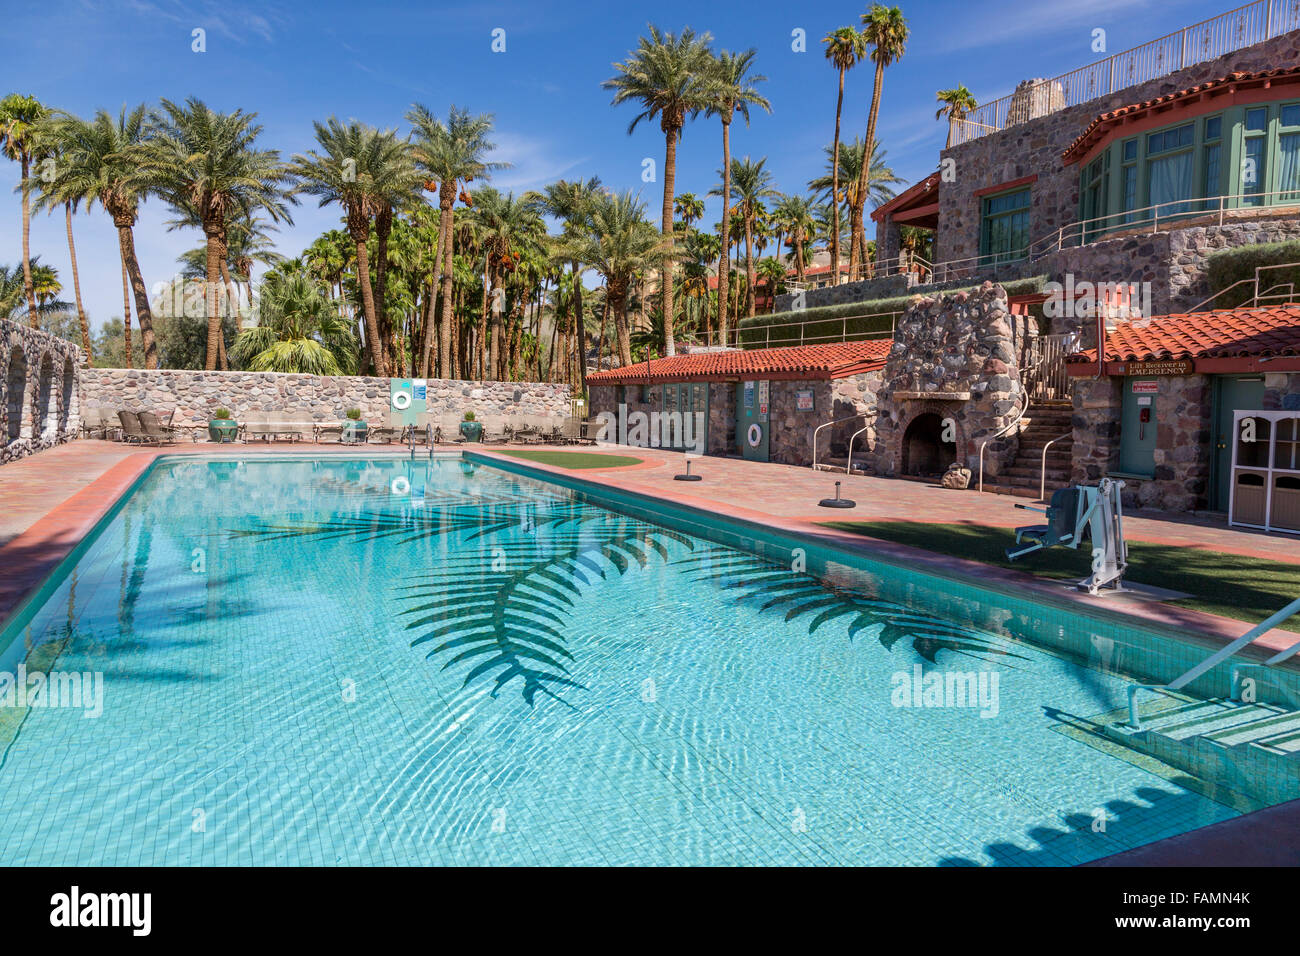 Valle De La Muerte California Furnace Creek A La Piscina Del